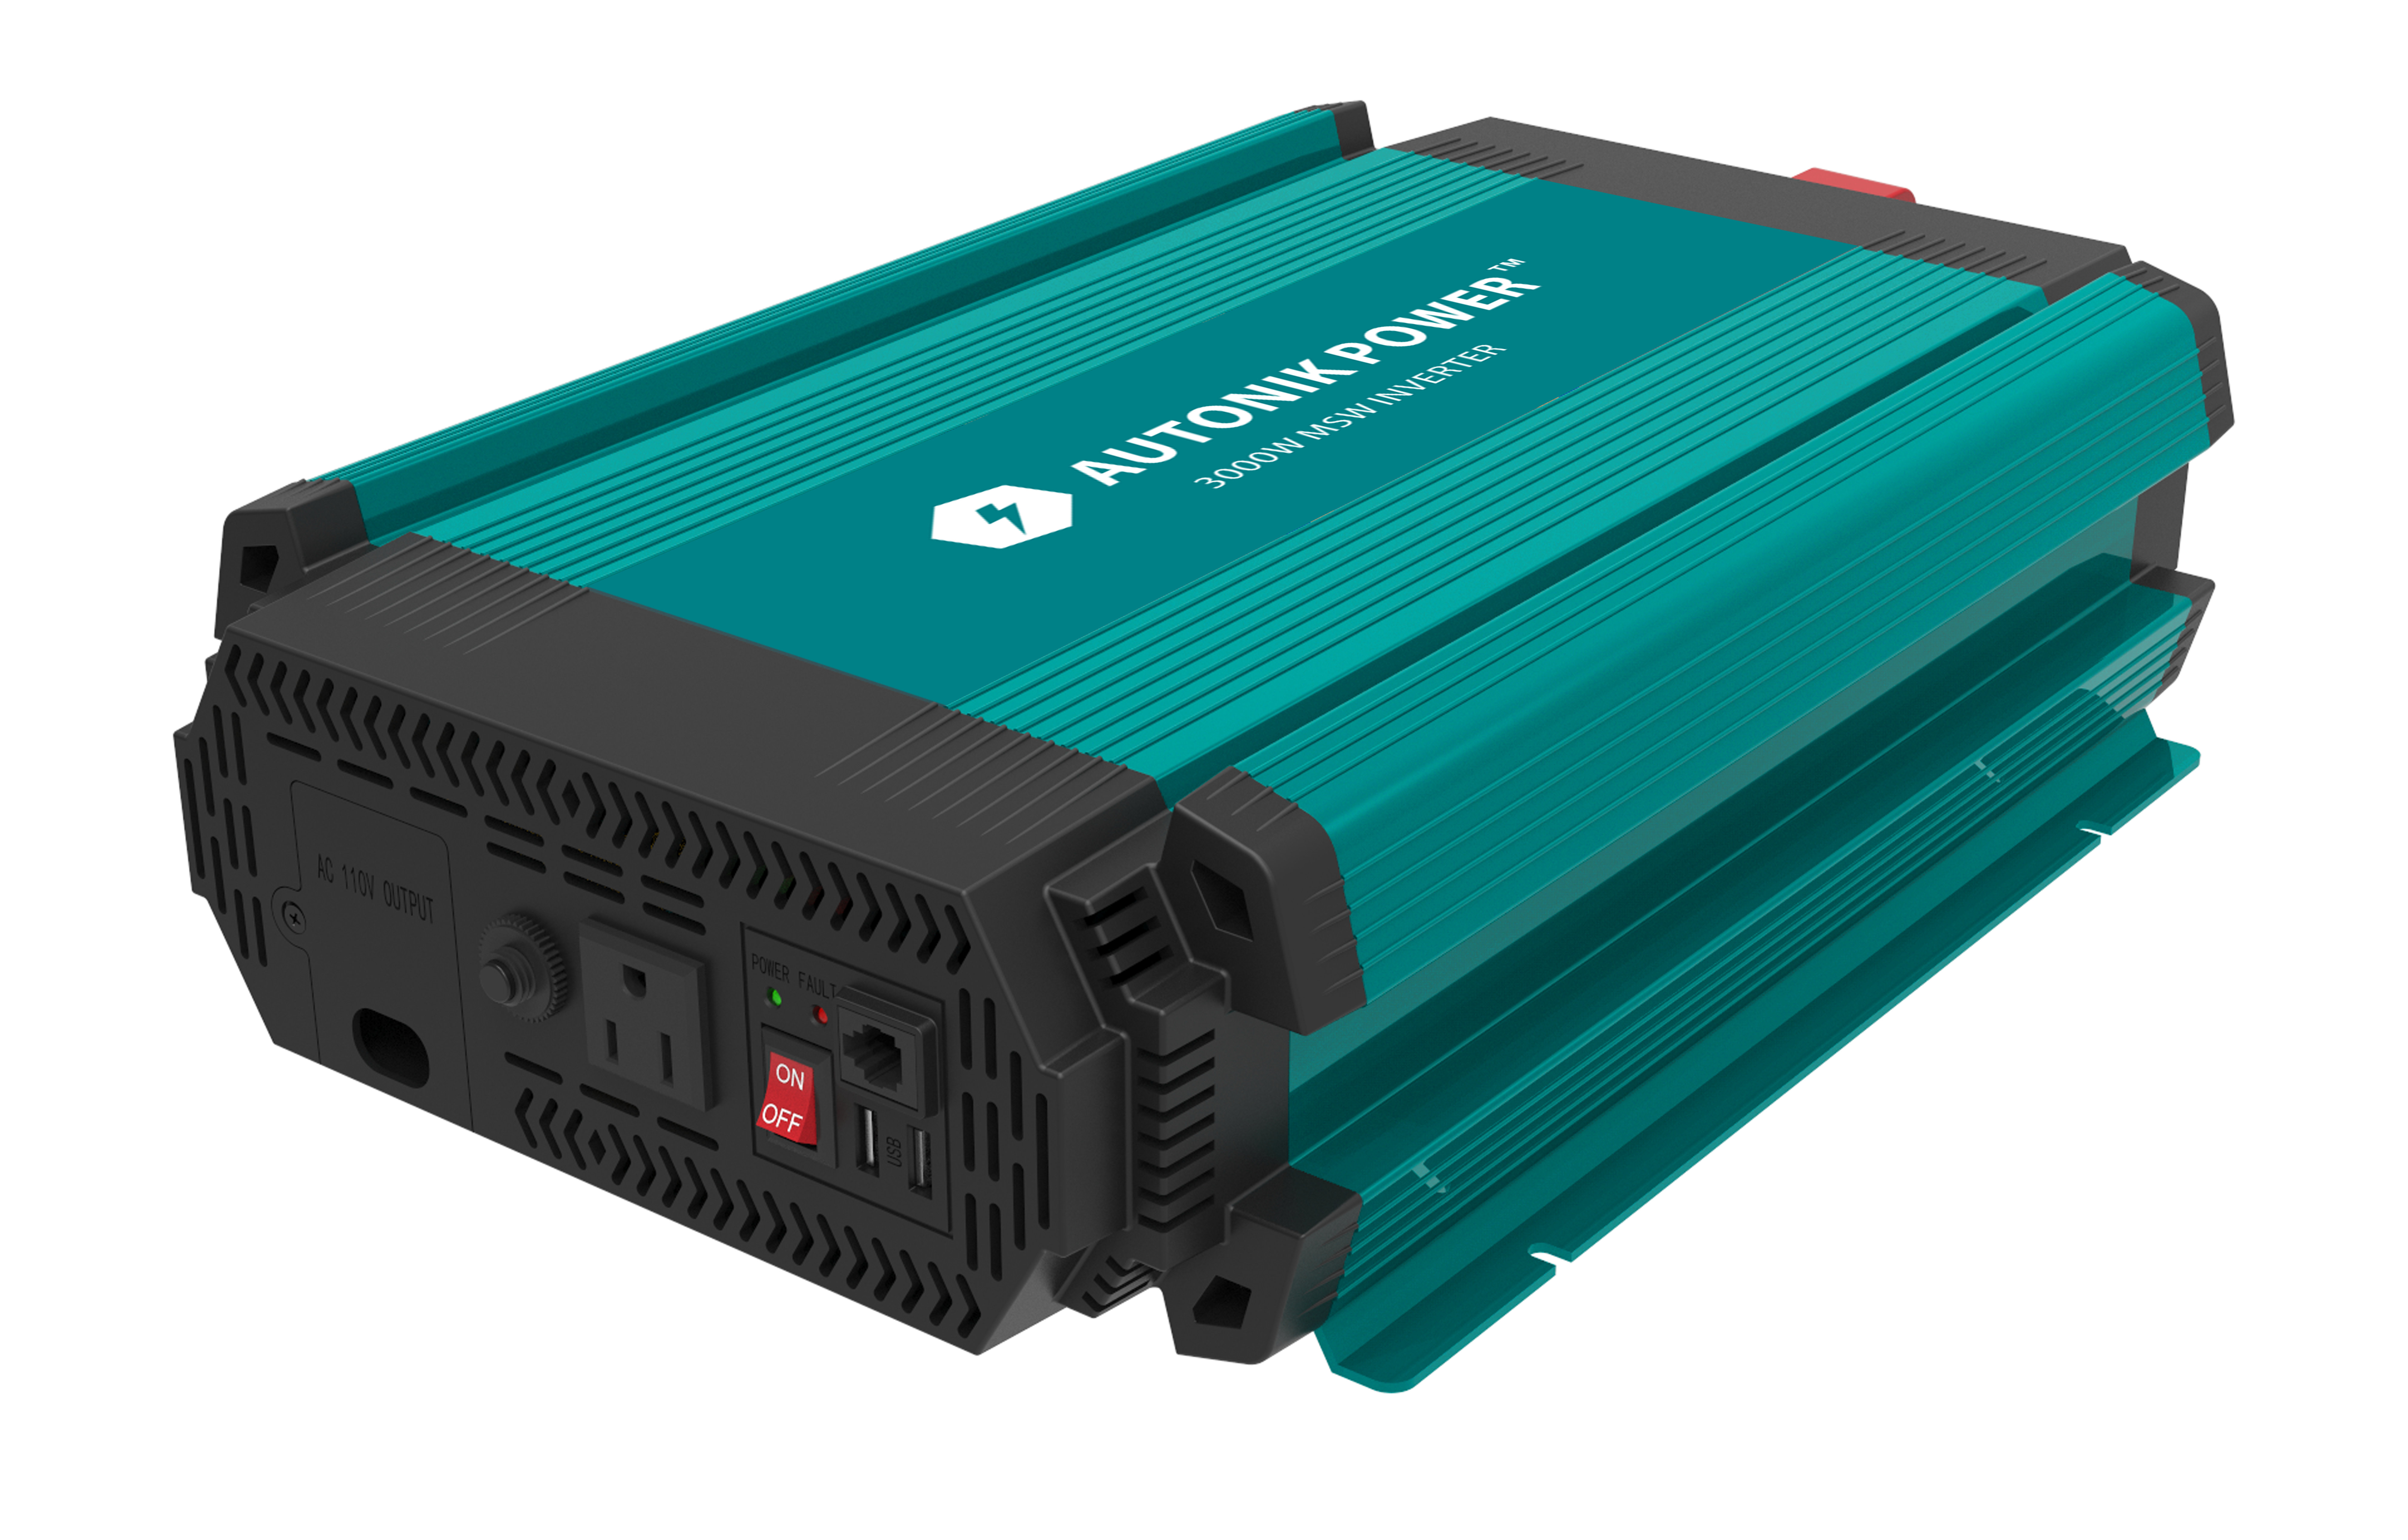 Int Serirs Modified Sine Wave Inverter (INT-3000)